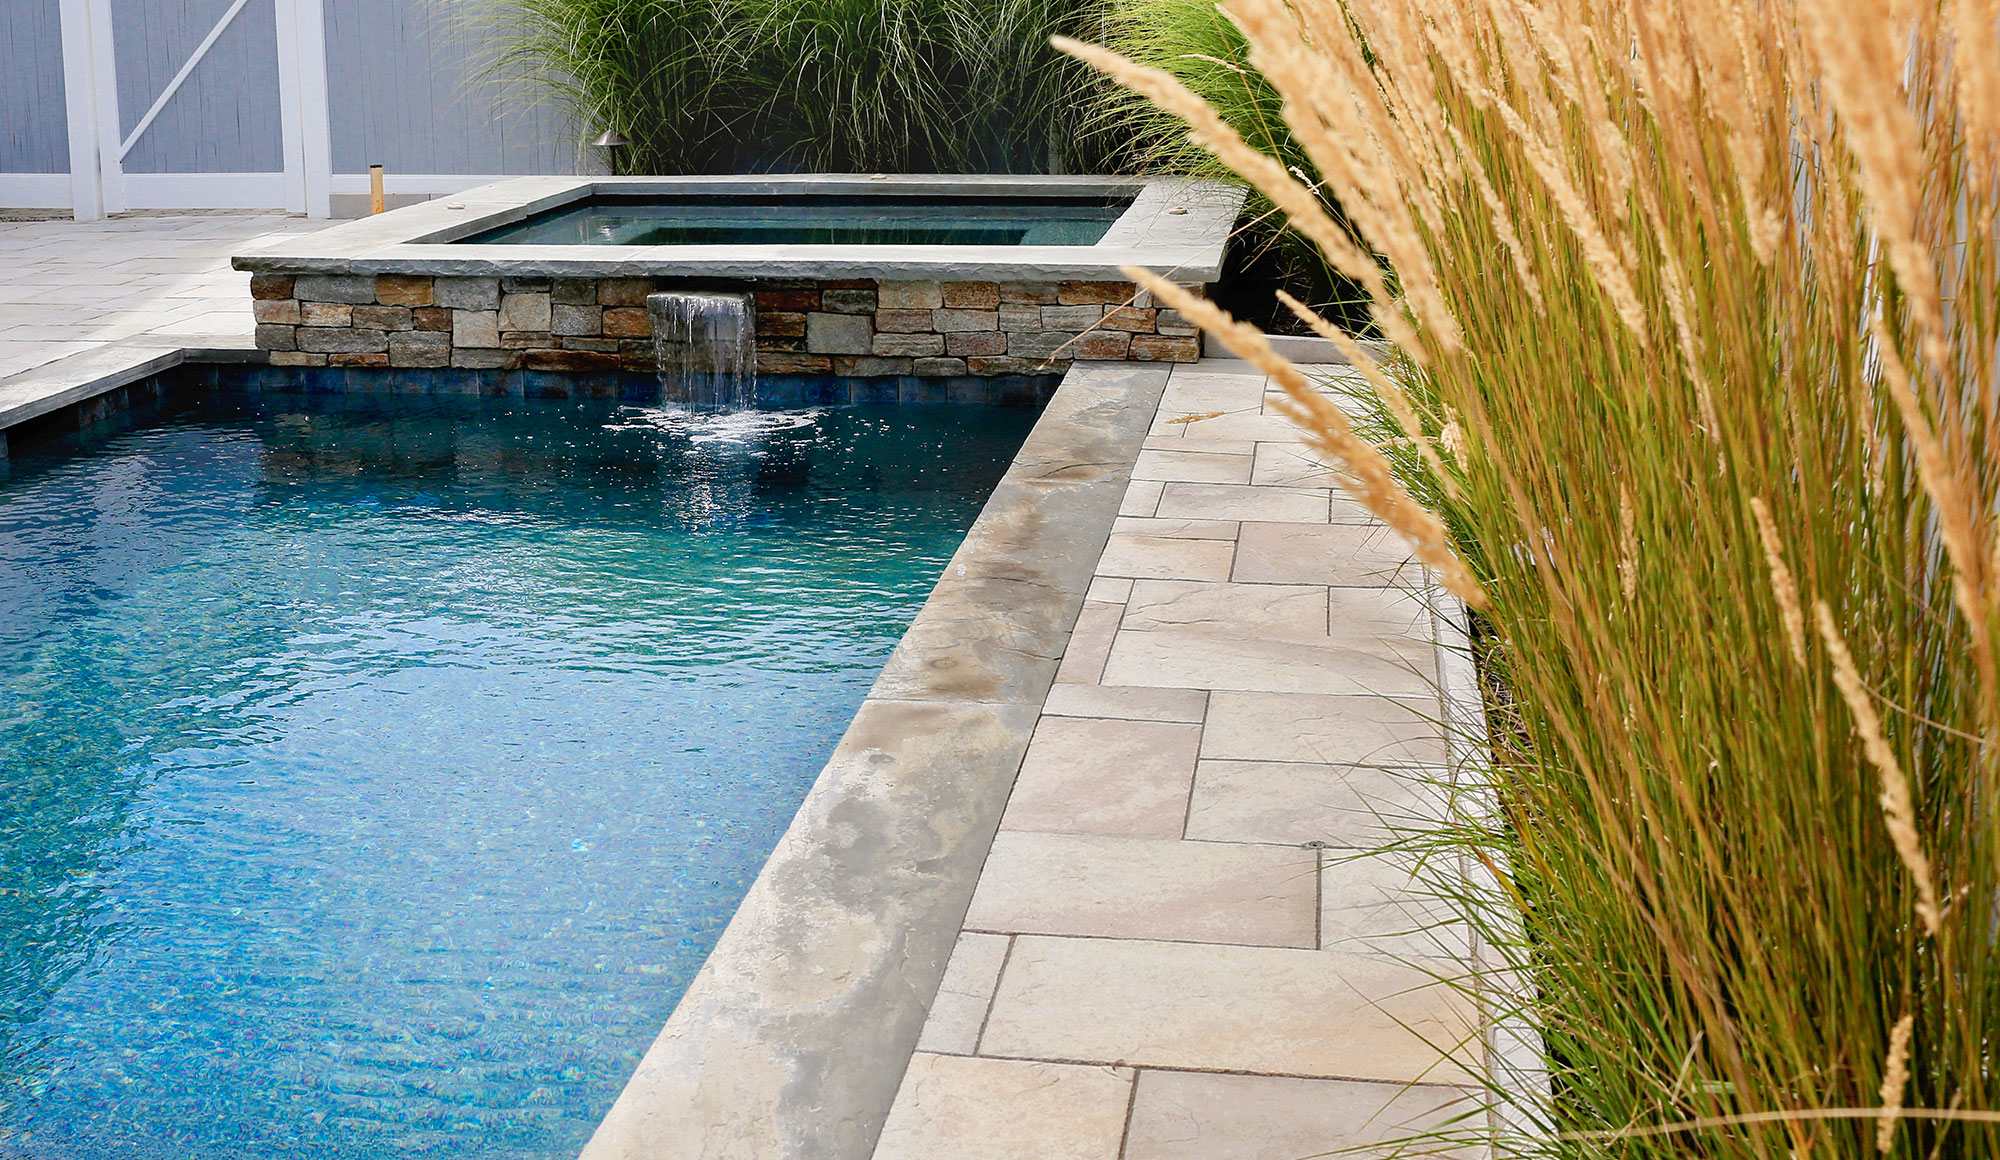 Create A Private Oasis With A Pool And Spa